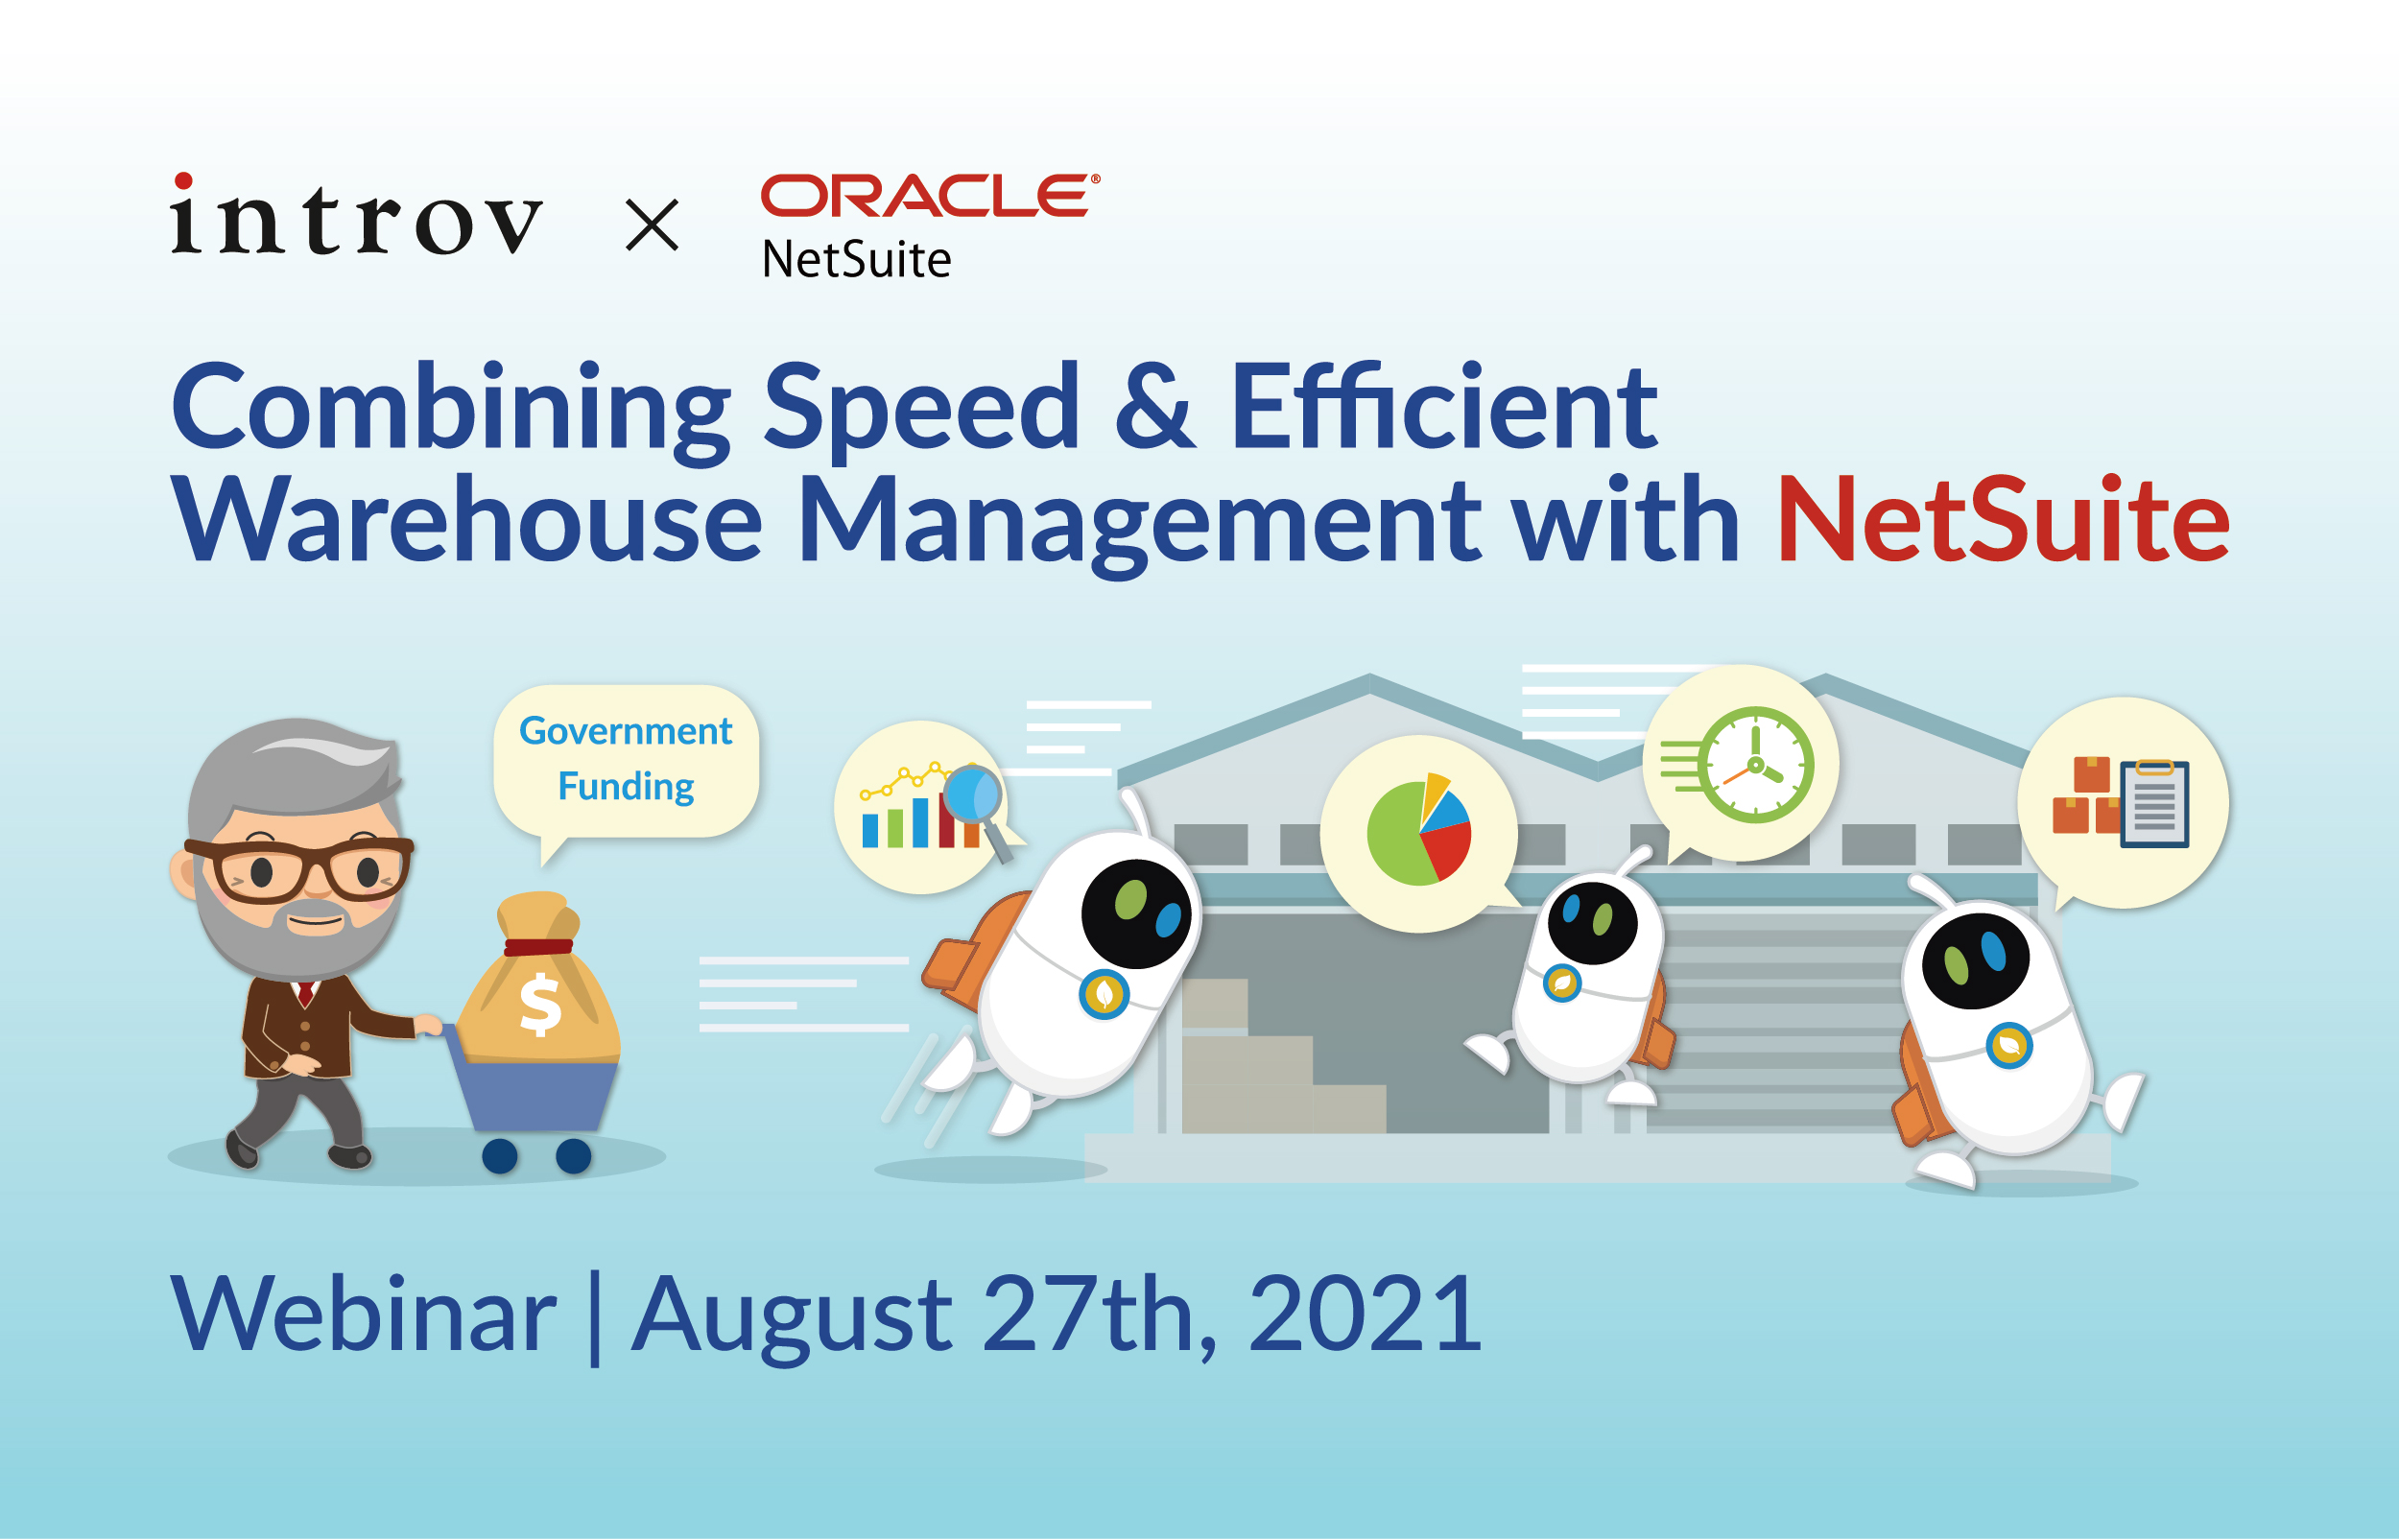 Webinar: Combining Speed & Efficient Warehouse Management with NetSuite (August 27th, 2021)